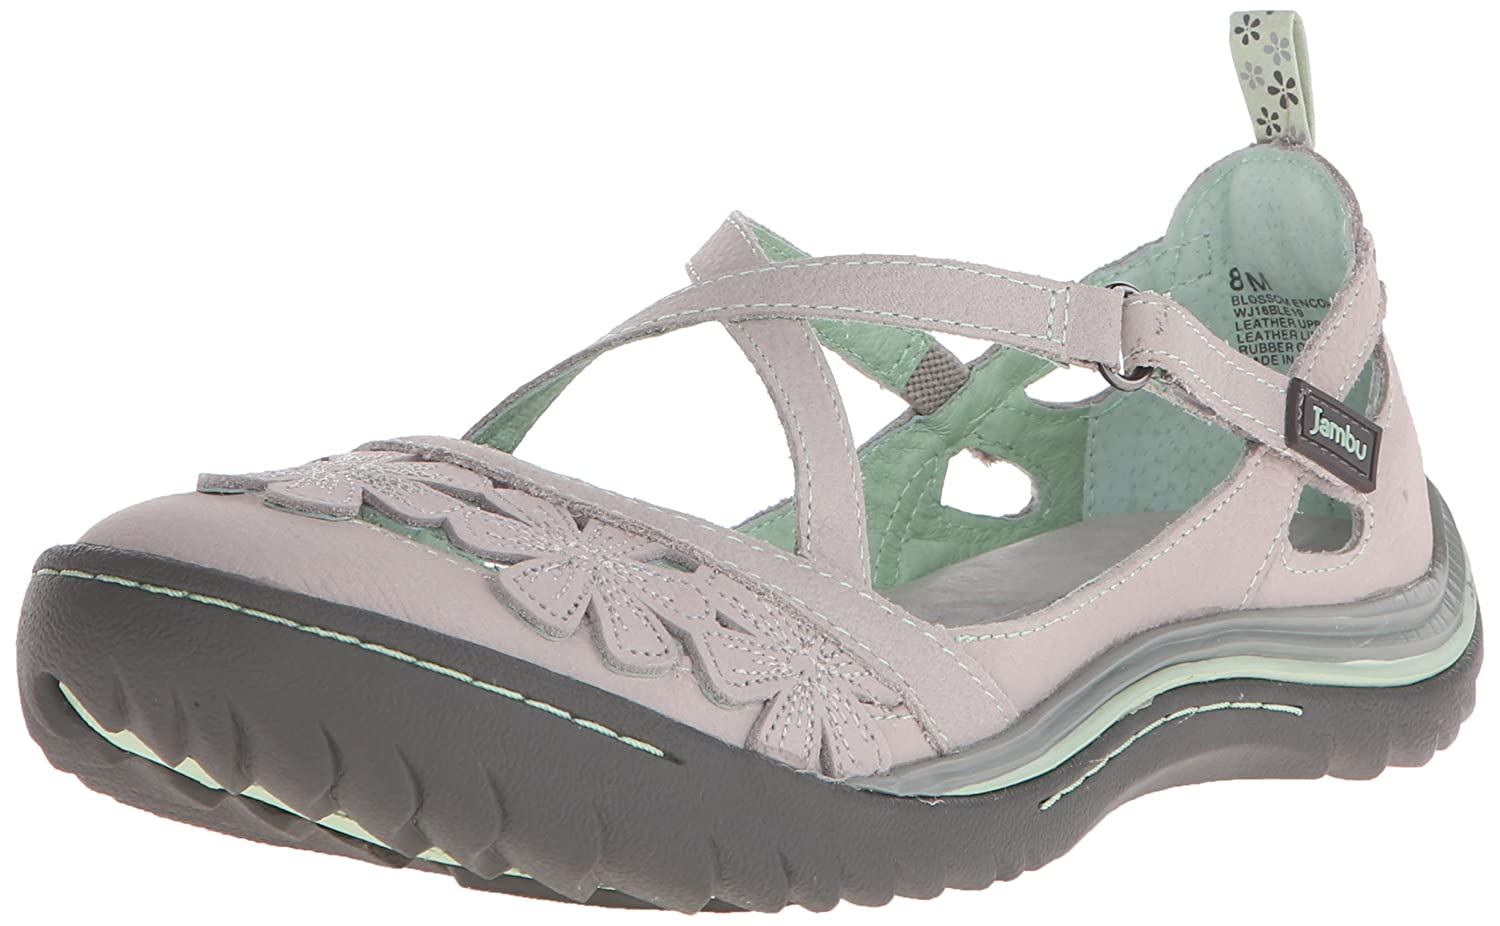 Jambu Women's Blossom Encore Mary Jane Flat B015D7I830 8 B(M) US|Light Grey